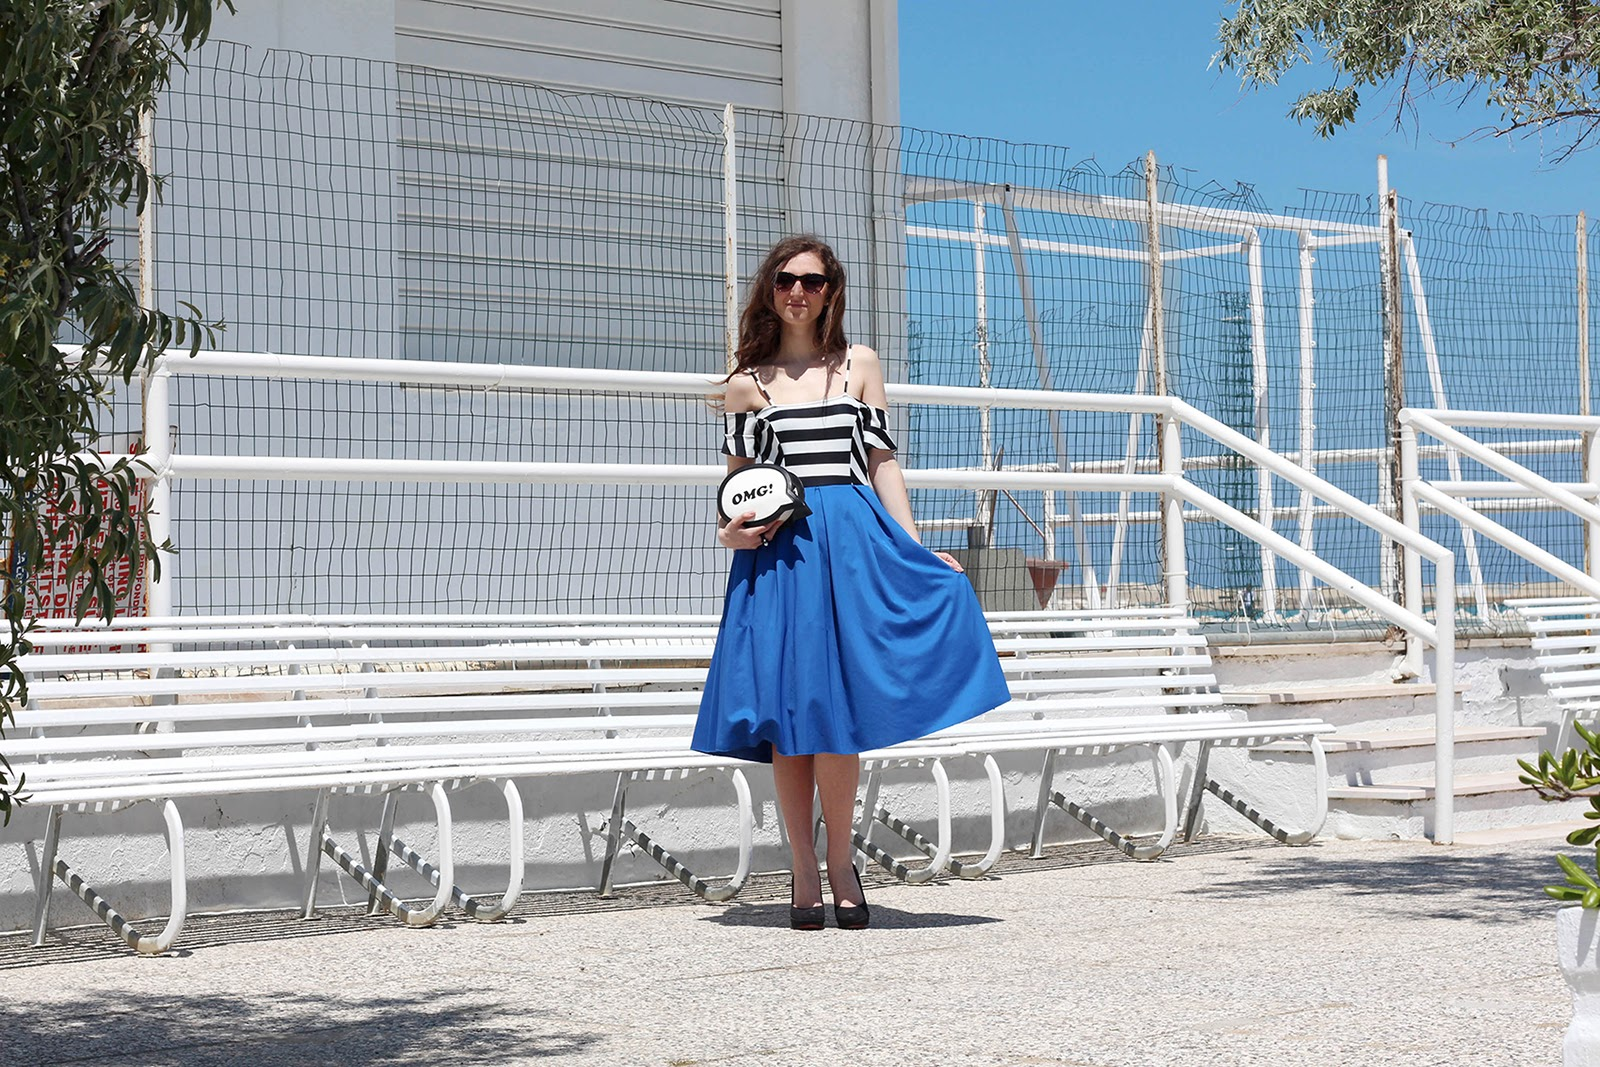 fashion style blogger outfit ootd italian girl italy vogue glamour pescara omg bag borsa cartoon pop blue stripes dress devilplus vestito blu righe matrobijoux ring anello wood legno mauro guidi shoes heels scarpe tacco zara chiodo nero giacca pelle leather jacket